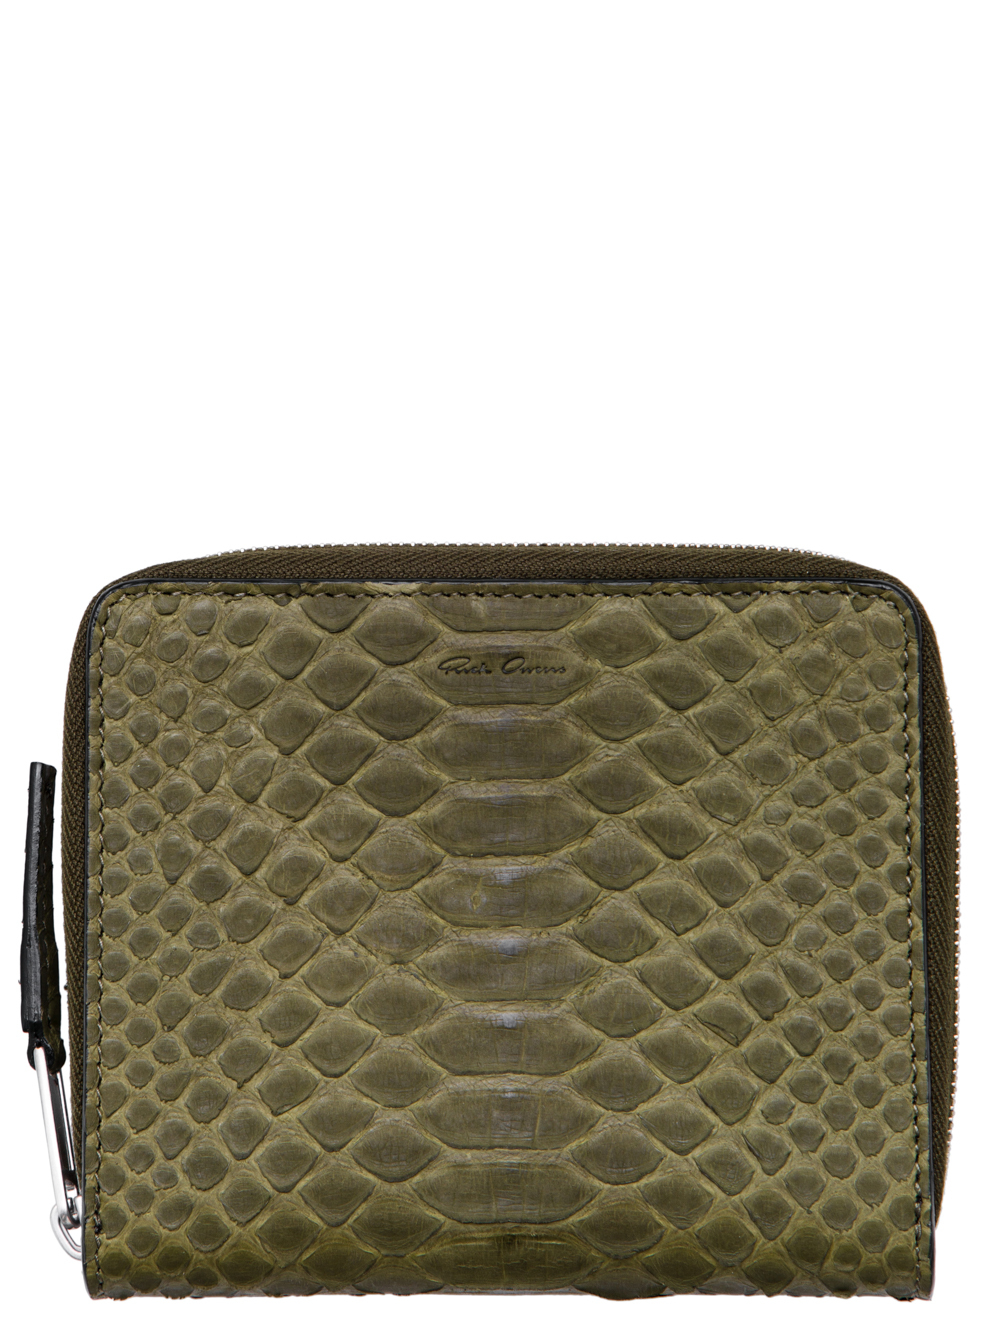 RICK OWENS FW18 SISYPHUS SMALL ZIPPED WALLET IN DIRTY GREEN PYTHON LEATHER